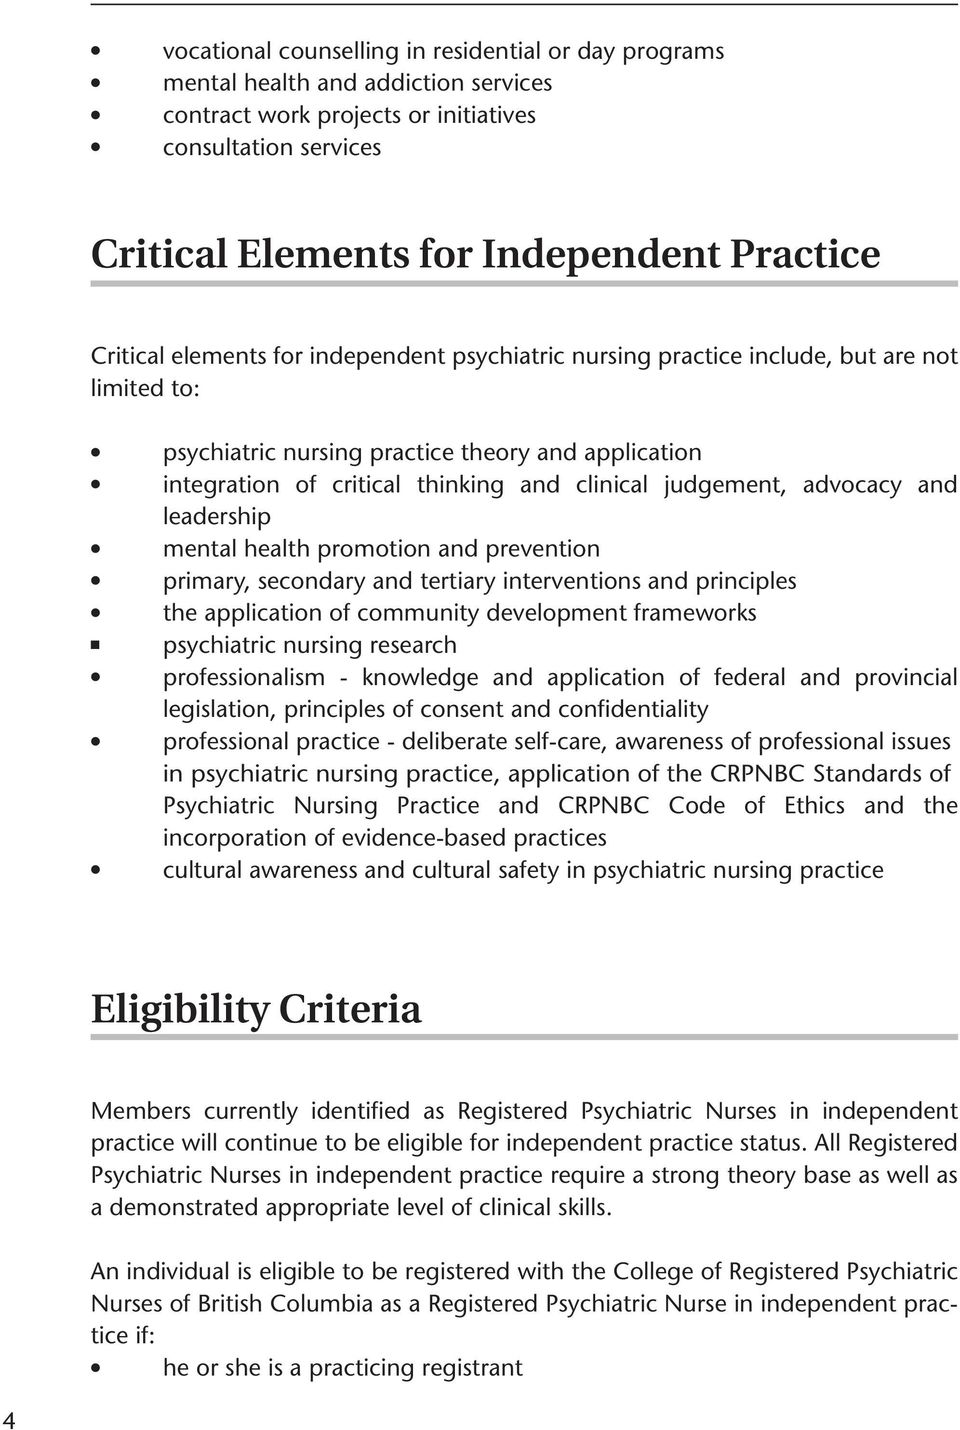 and eadership menta heath promotion and prevention primary, secondary and tertiary interventions and principes the appication of community deveopment frameworks psychiatric nursing research